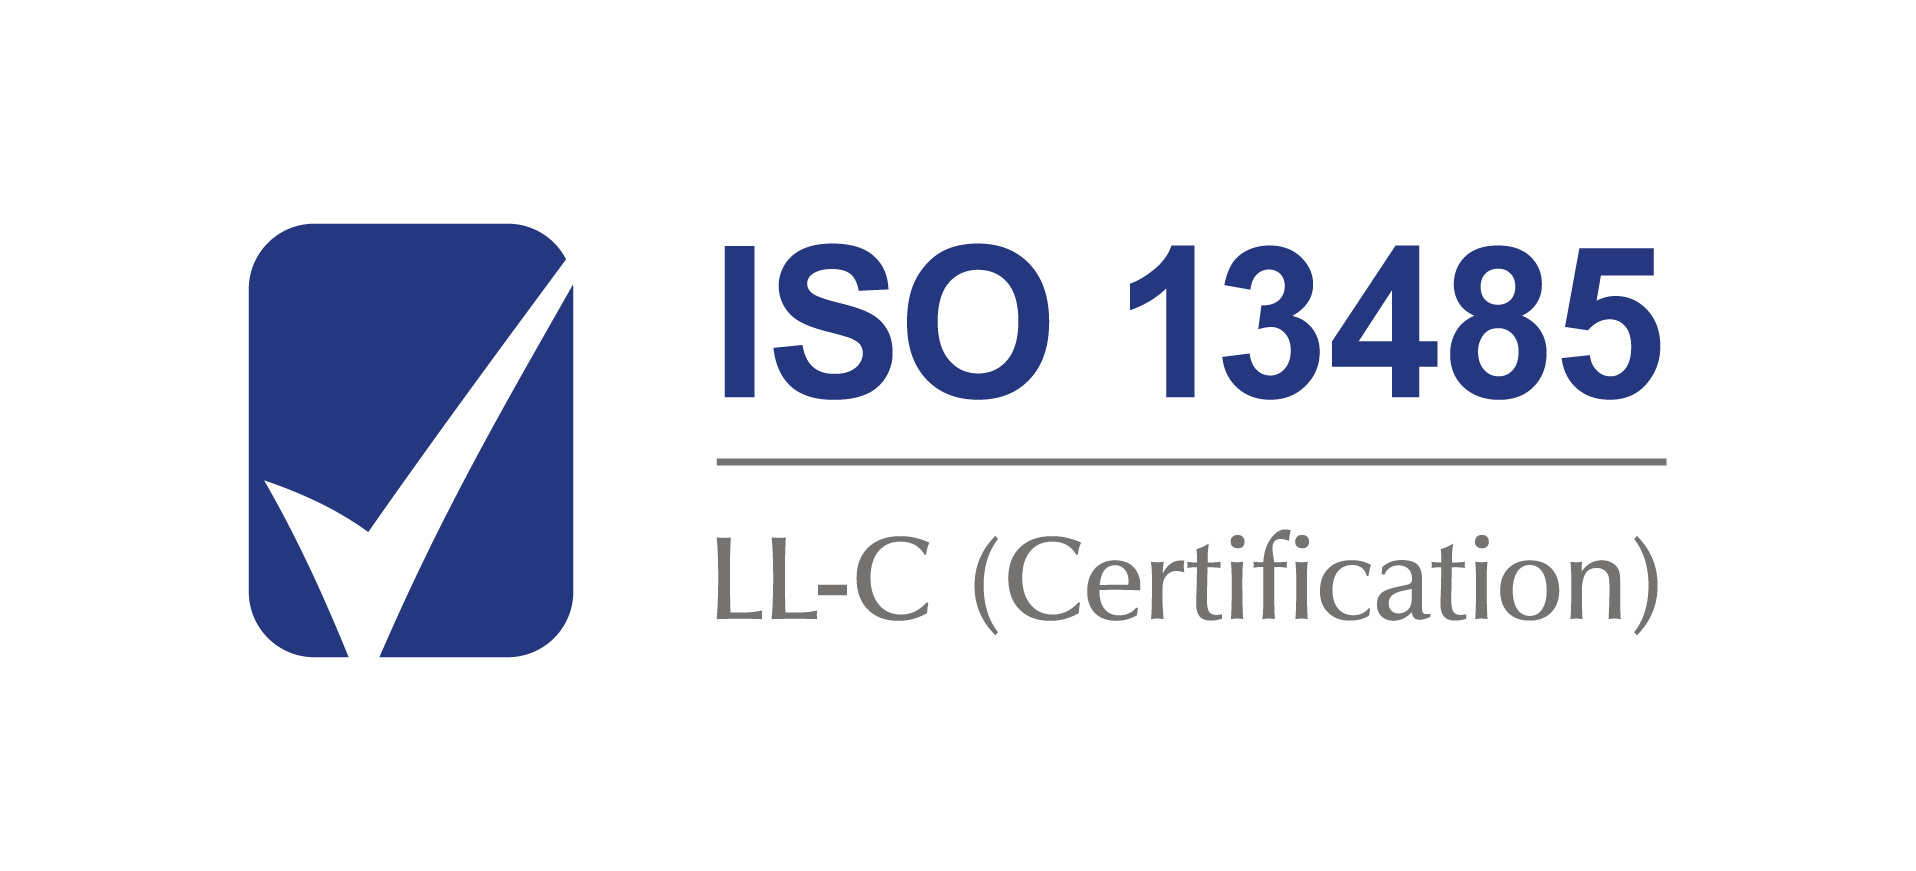 QMENTA receives ISO 13485:2016 certification for its QMS system